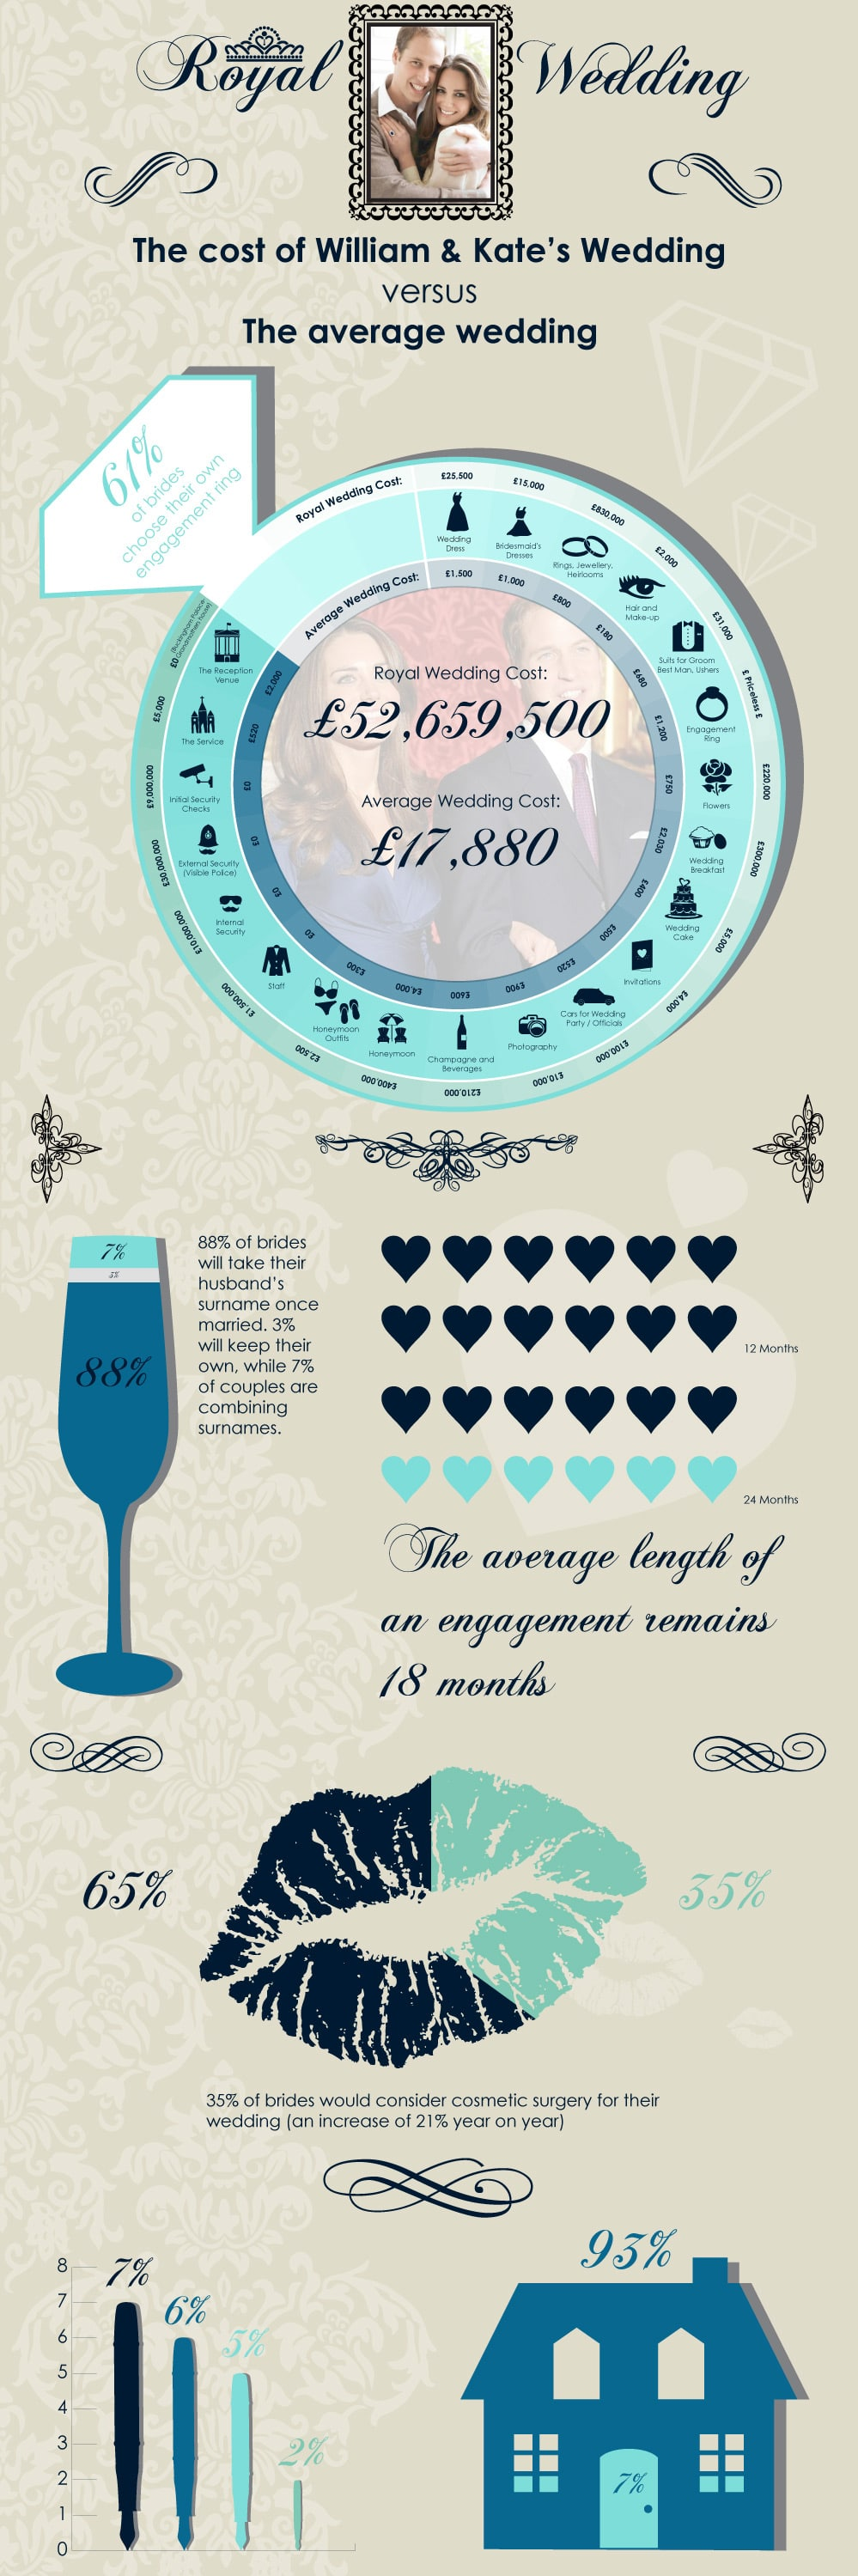 The Royal Wedding Statistics Infographic